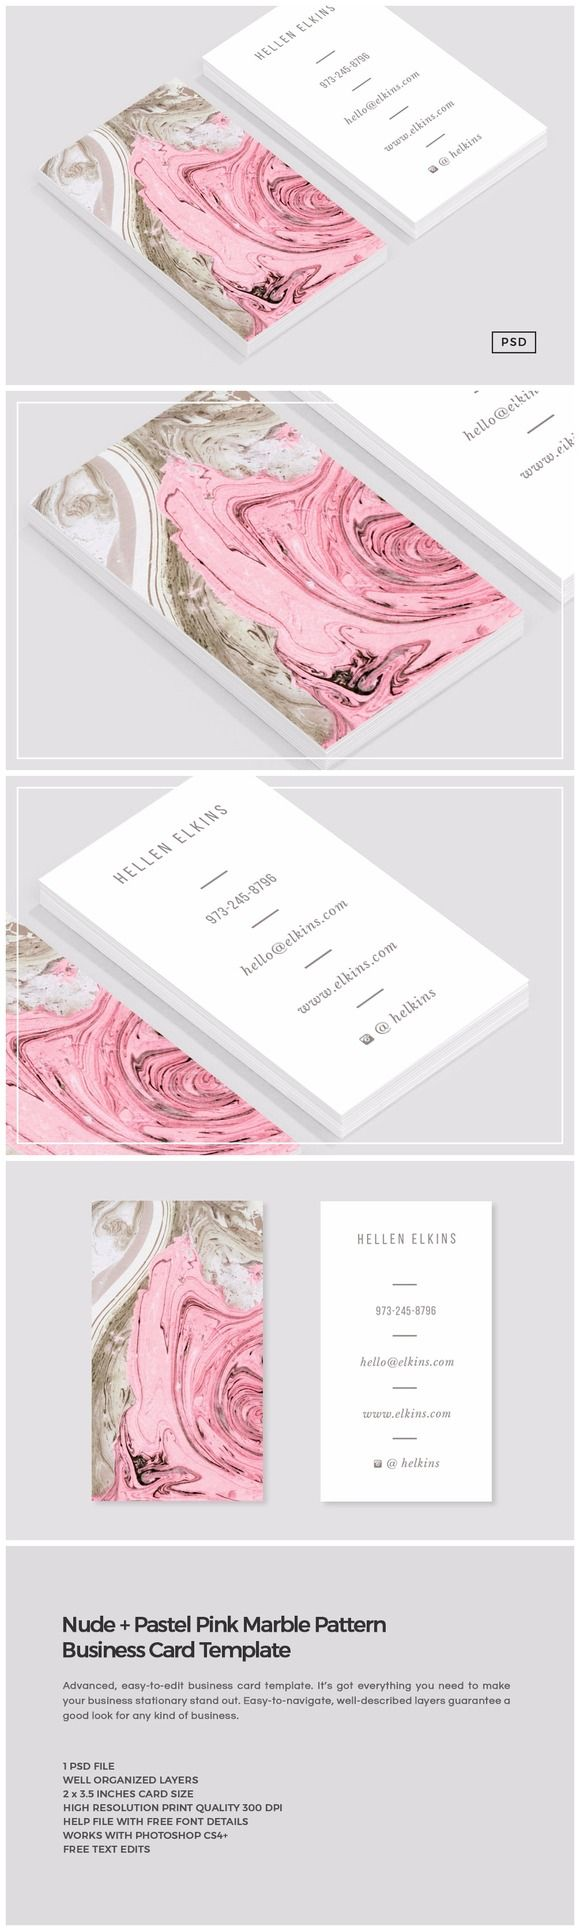 Nude + Pink Marble Business Card https://creativemarket.com/MeeraG/706535-Nude-Pink-Marble-Business-Card #design #art #graphicdesign